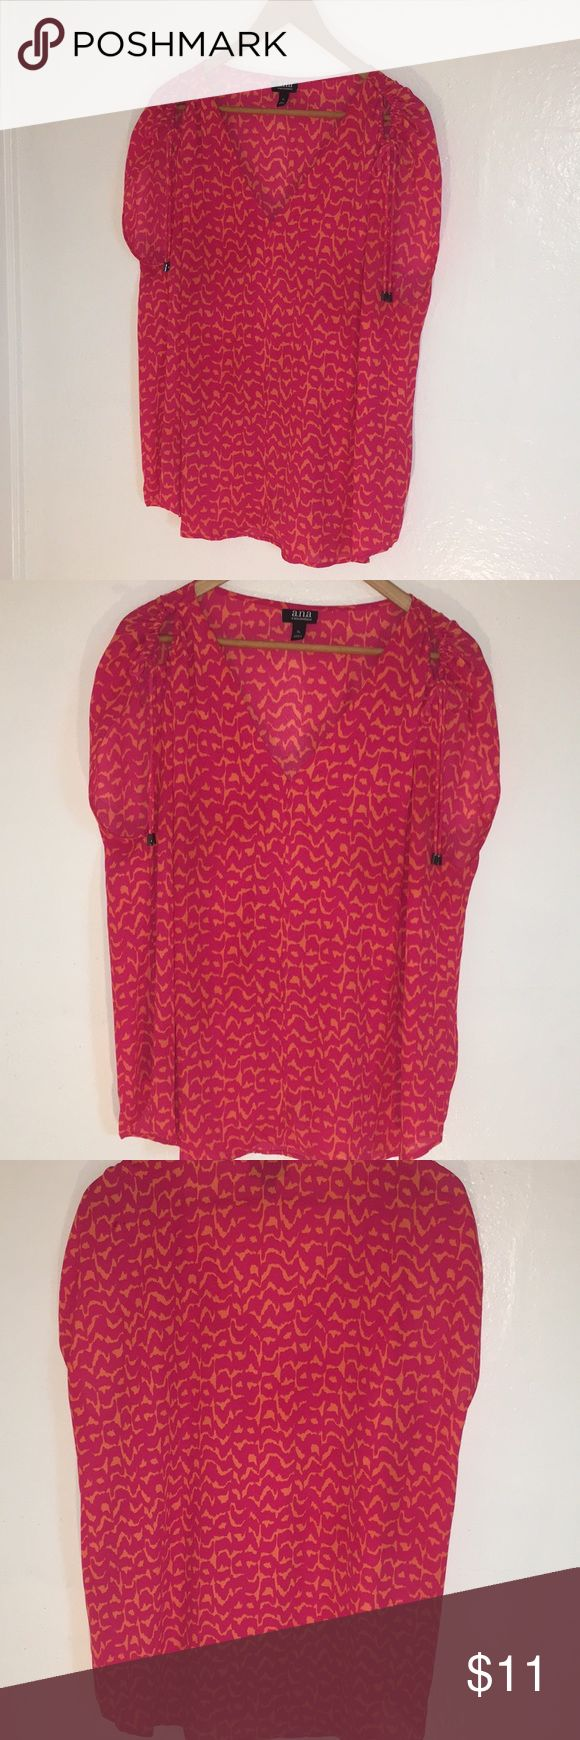 Bright and vibrant blouse Tie sleeve, v-neck blouse loose fitting magenta and orange a.n.a Tops Blouses